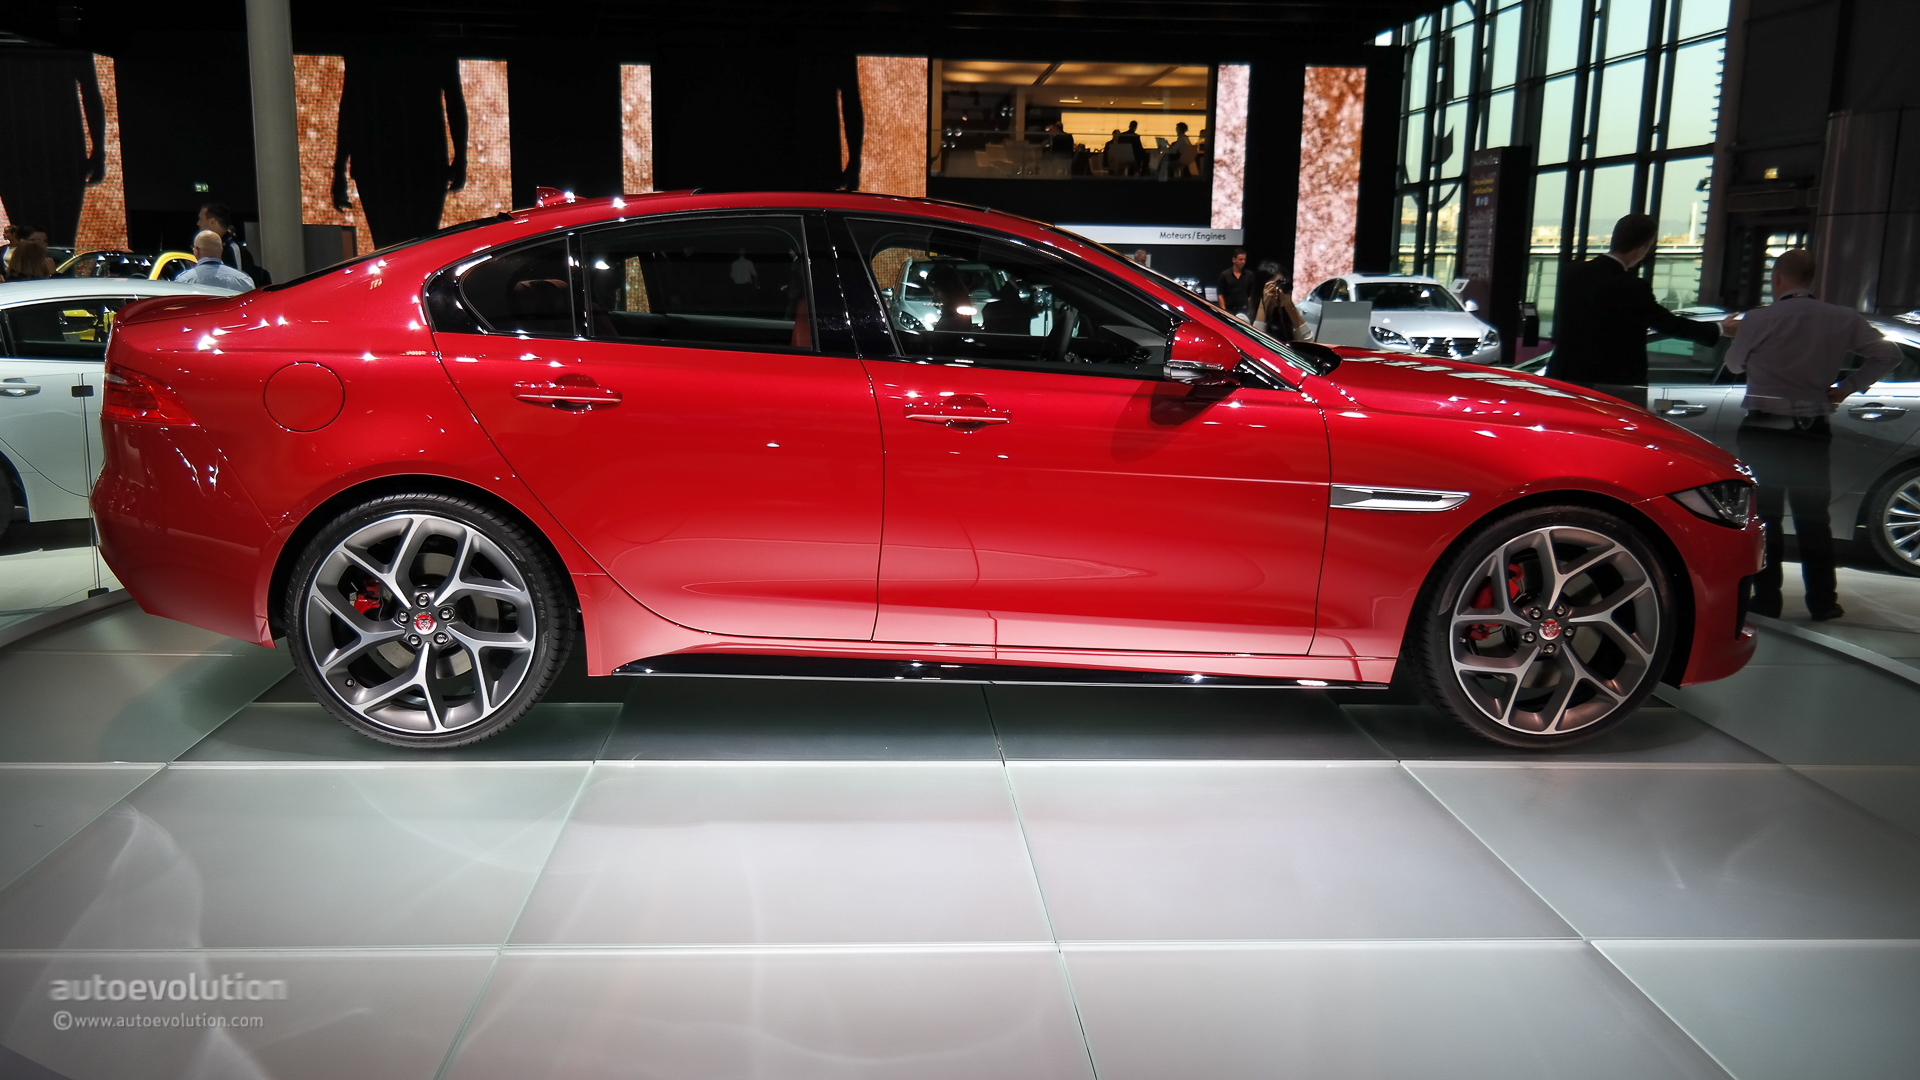 jaguar xe debuts at paris pricing announced ingenium engine lineup detailed live photos. Black Bedroom Furniture Sets. Home Design Ideas